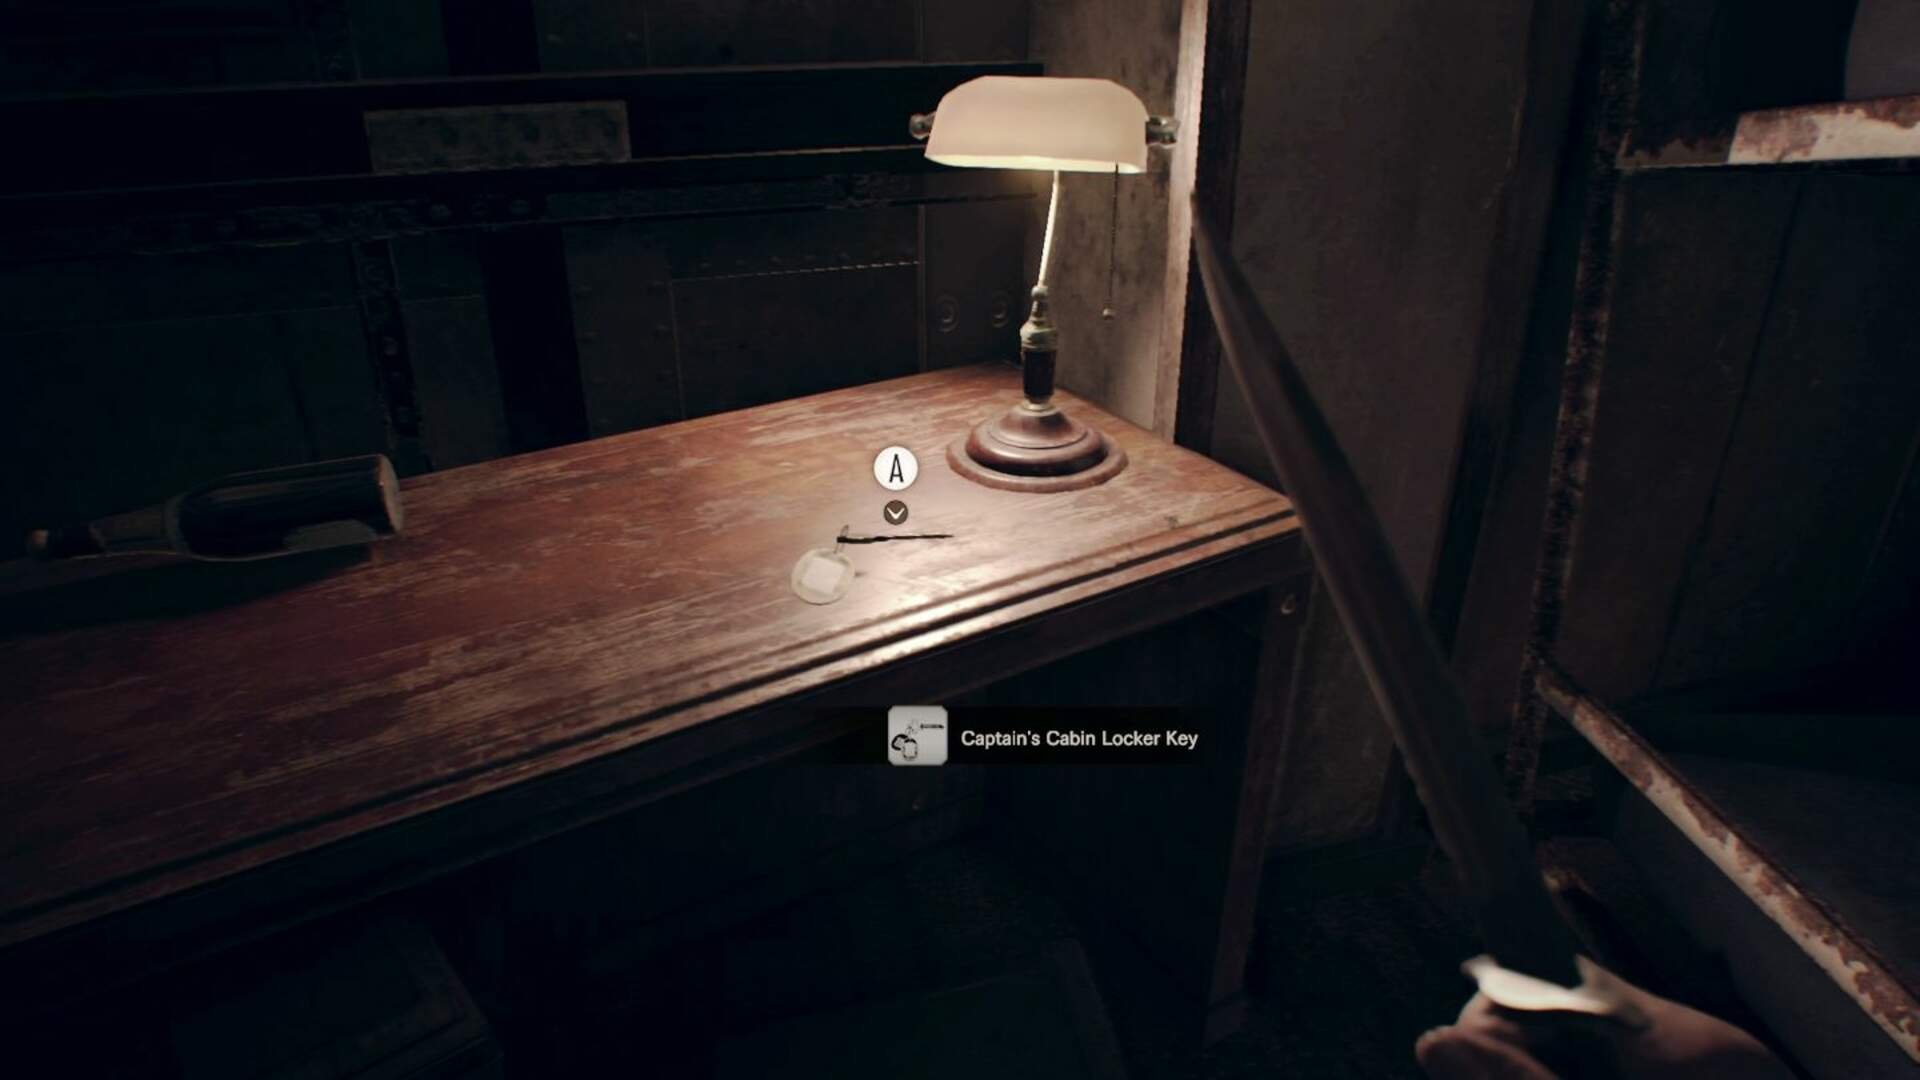 Resident Evil 7 Walkthrough - Fixing the Ship's Elevator, Find the Captain's Cabin Locker Key, Solve the Lounge Painting Puzzle